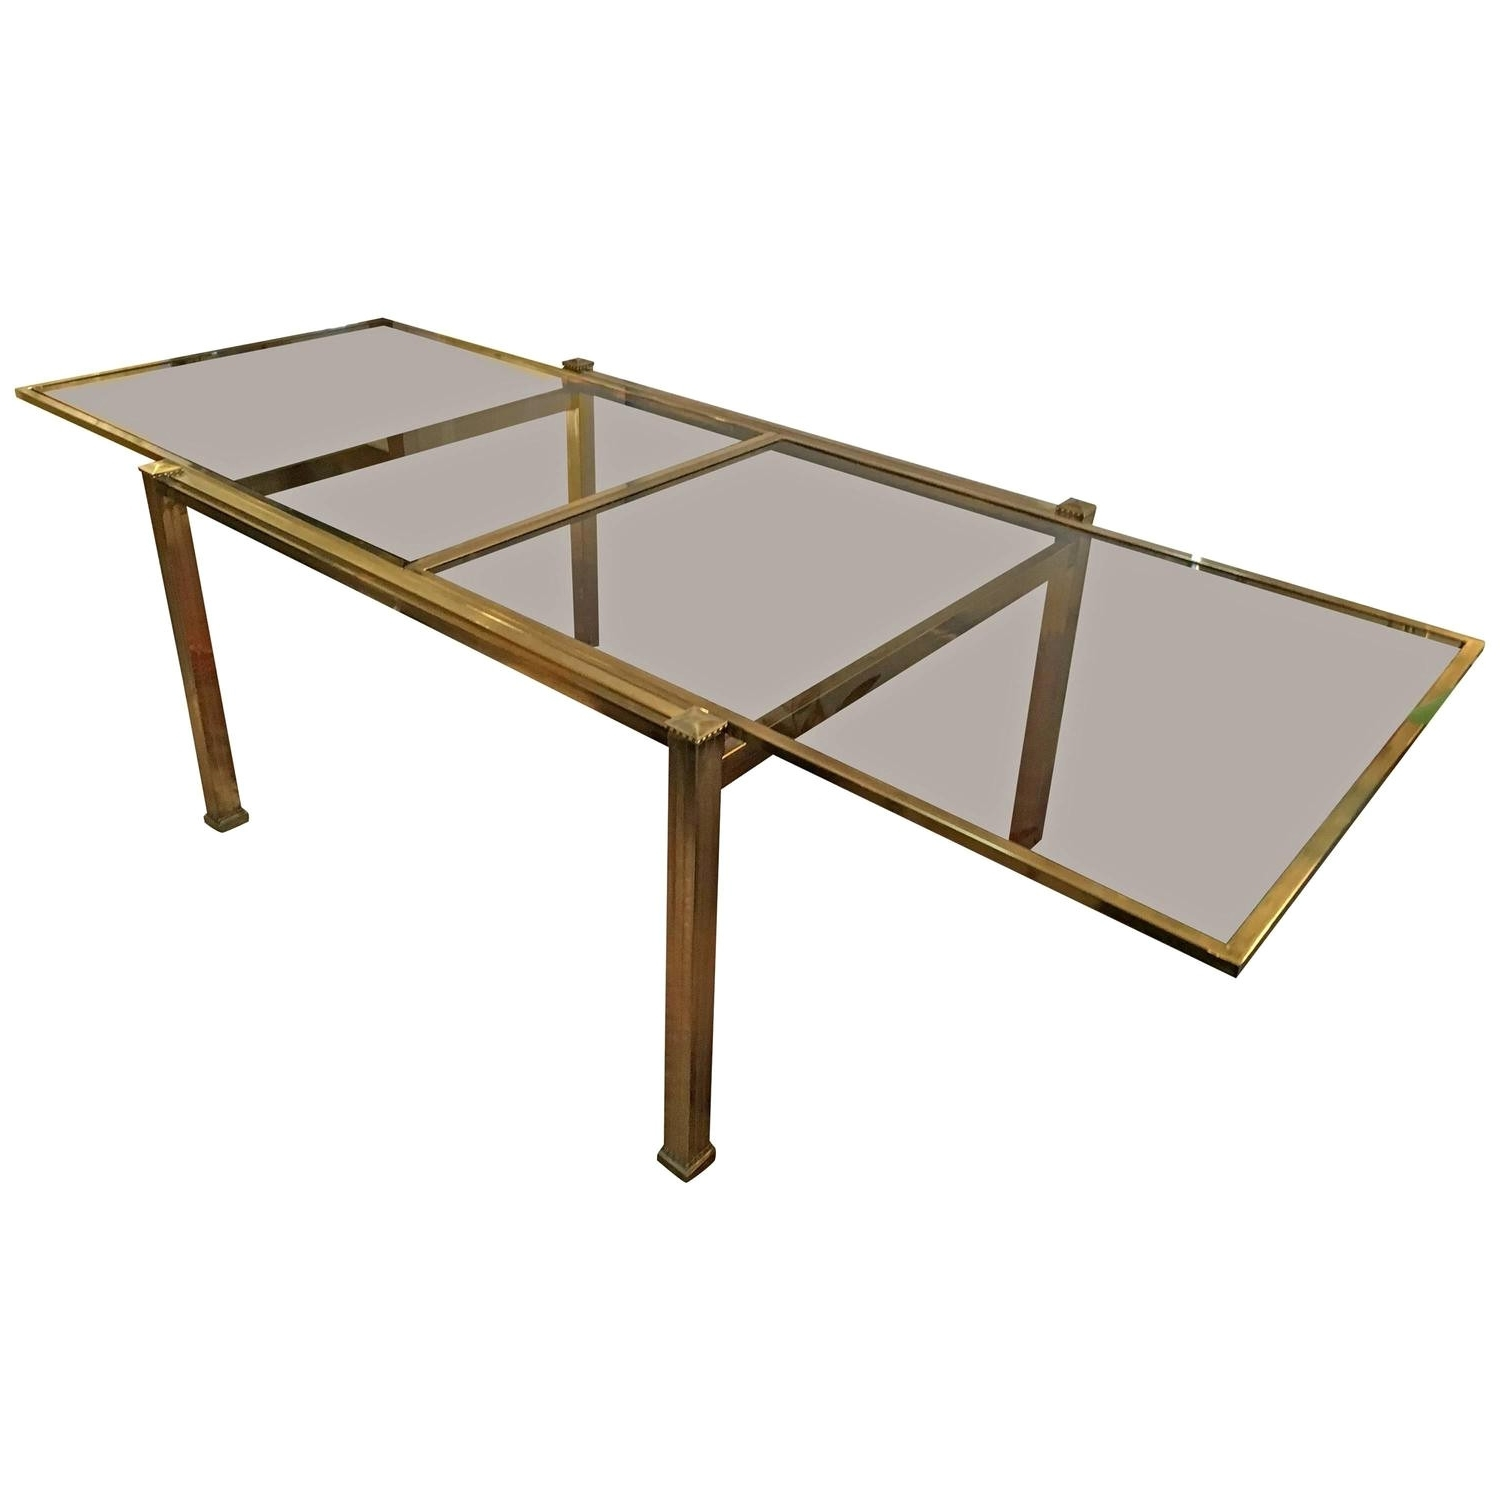 Jaxon Round Extension Dining Tables Inside Newest Ideal Mastercraft Brass And Smoked Glass Extension Dining Table At (View 15 of 25)